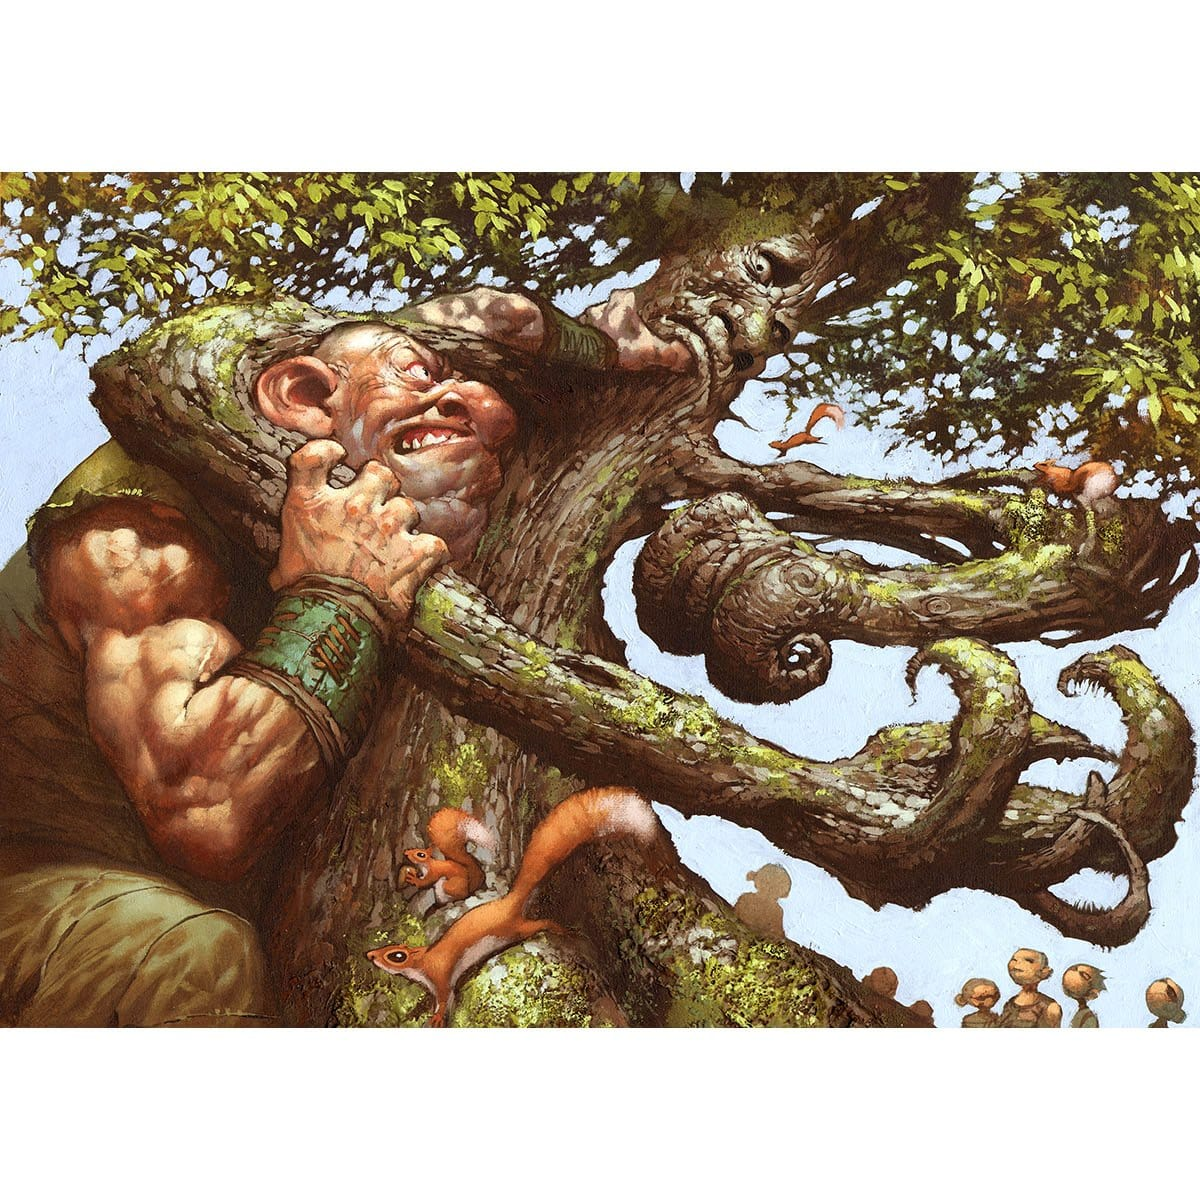 Oaken Brawler Print - Print - Original Magic Art - Accessories for Magic the Gathering and other card games